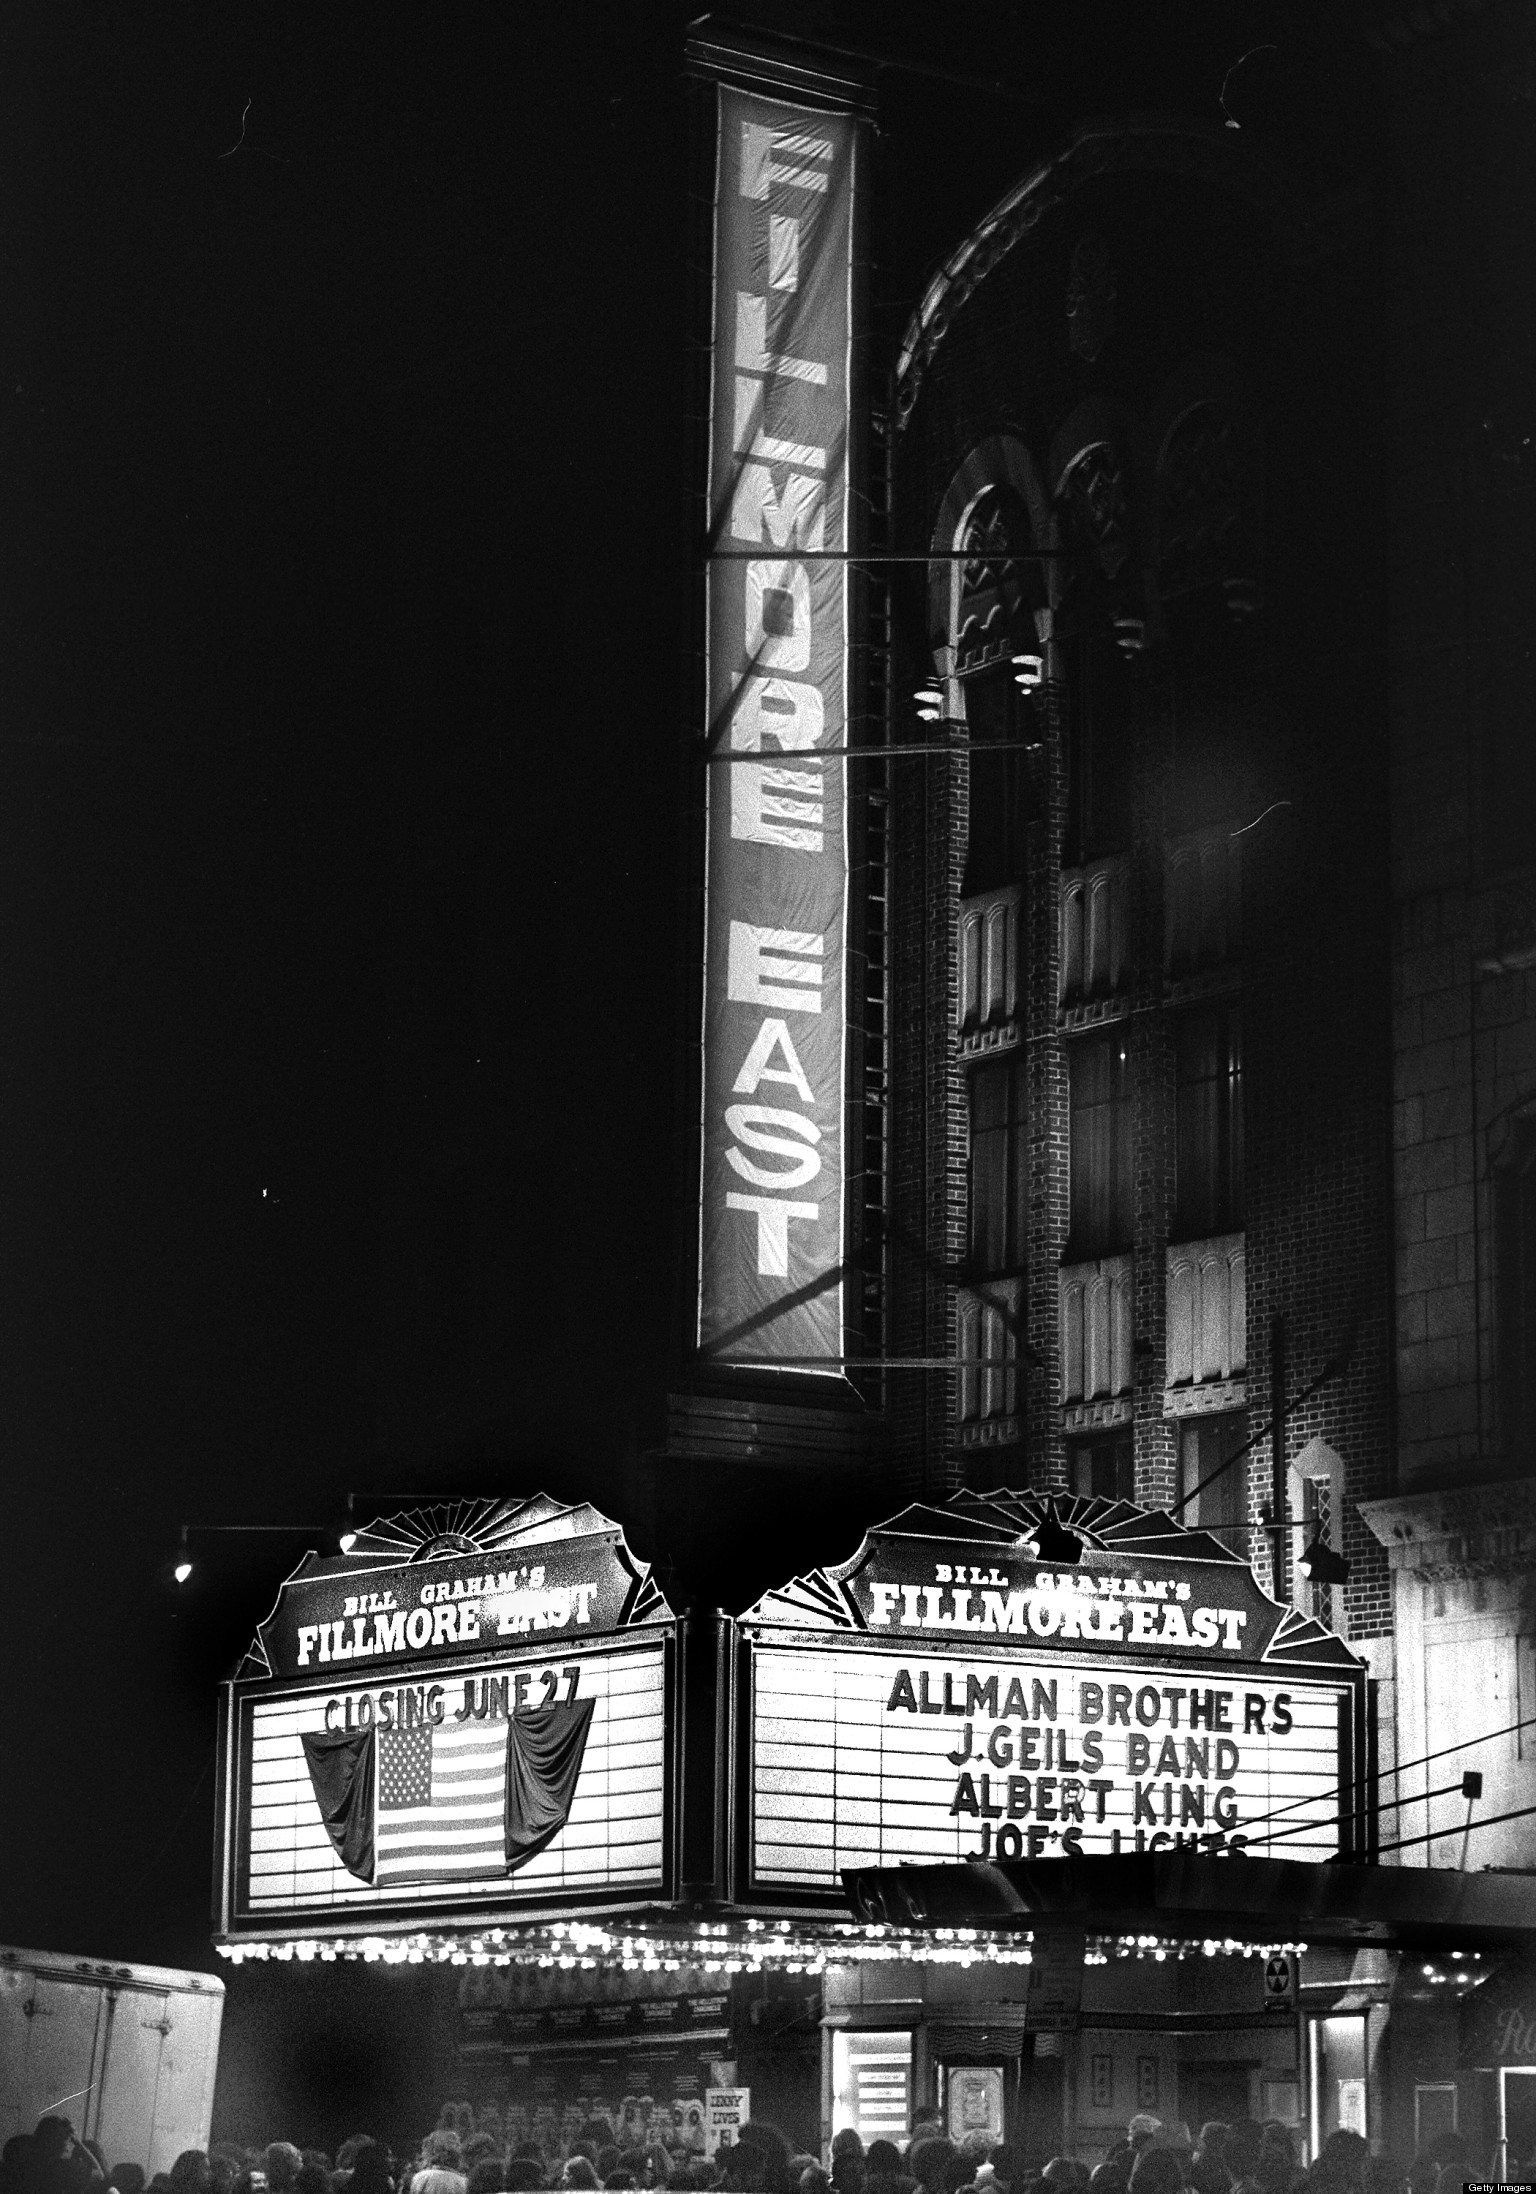 45 Years Ago April 5th And 6th 1968 The Who Debut At The Fillmore East The Night After Mlk